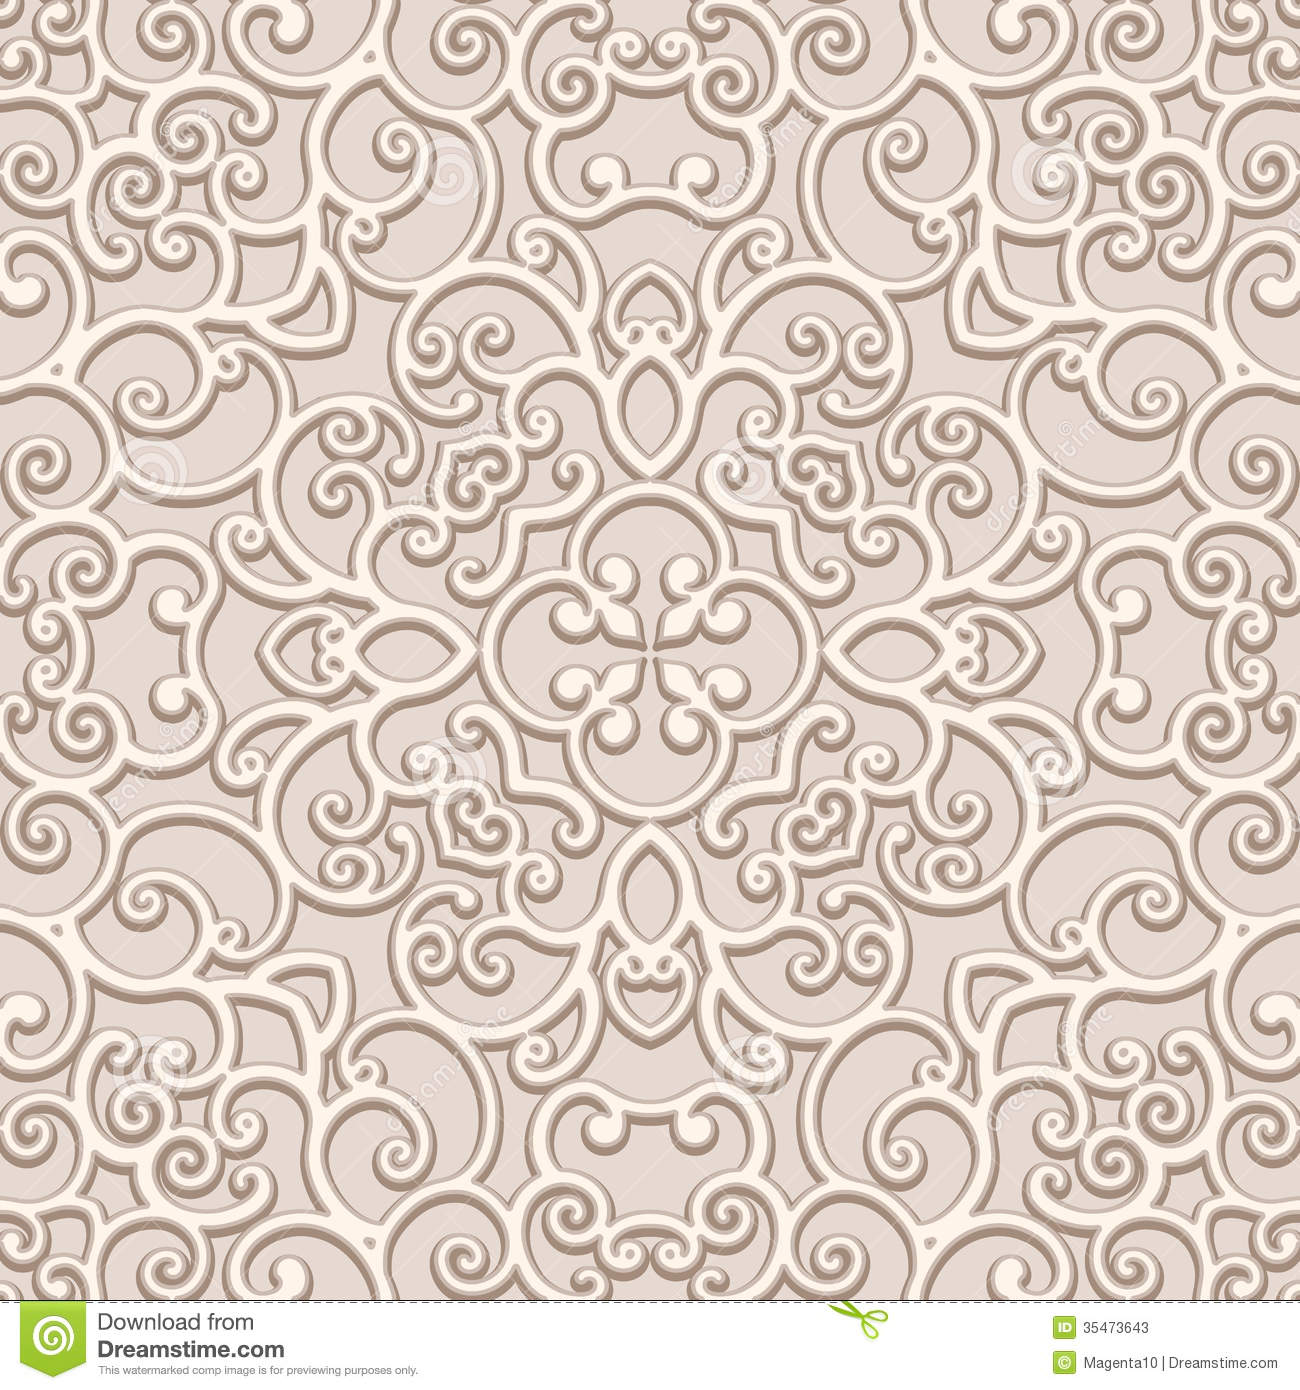 Gallery For > Seamless Lace Background